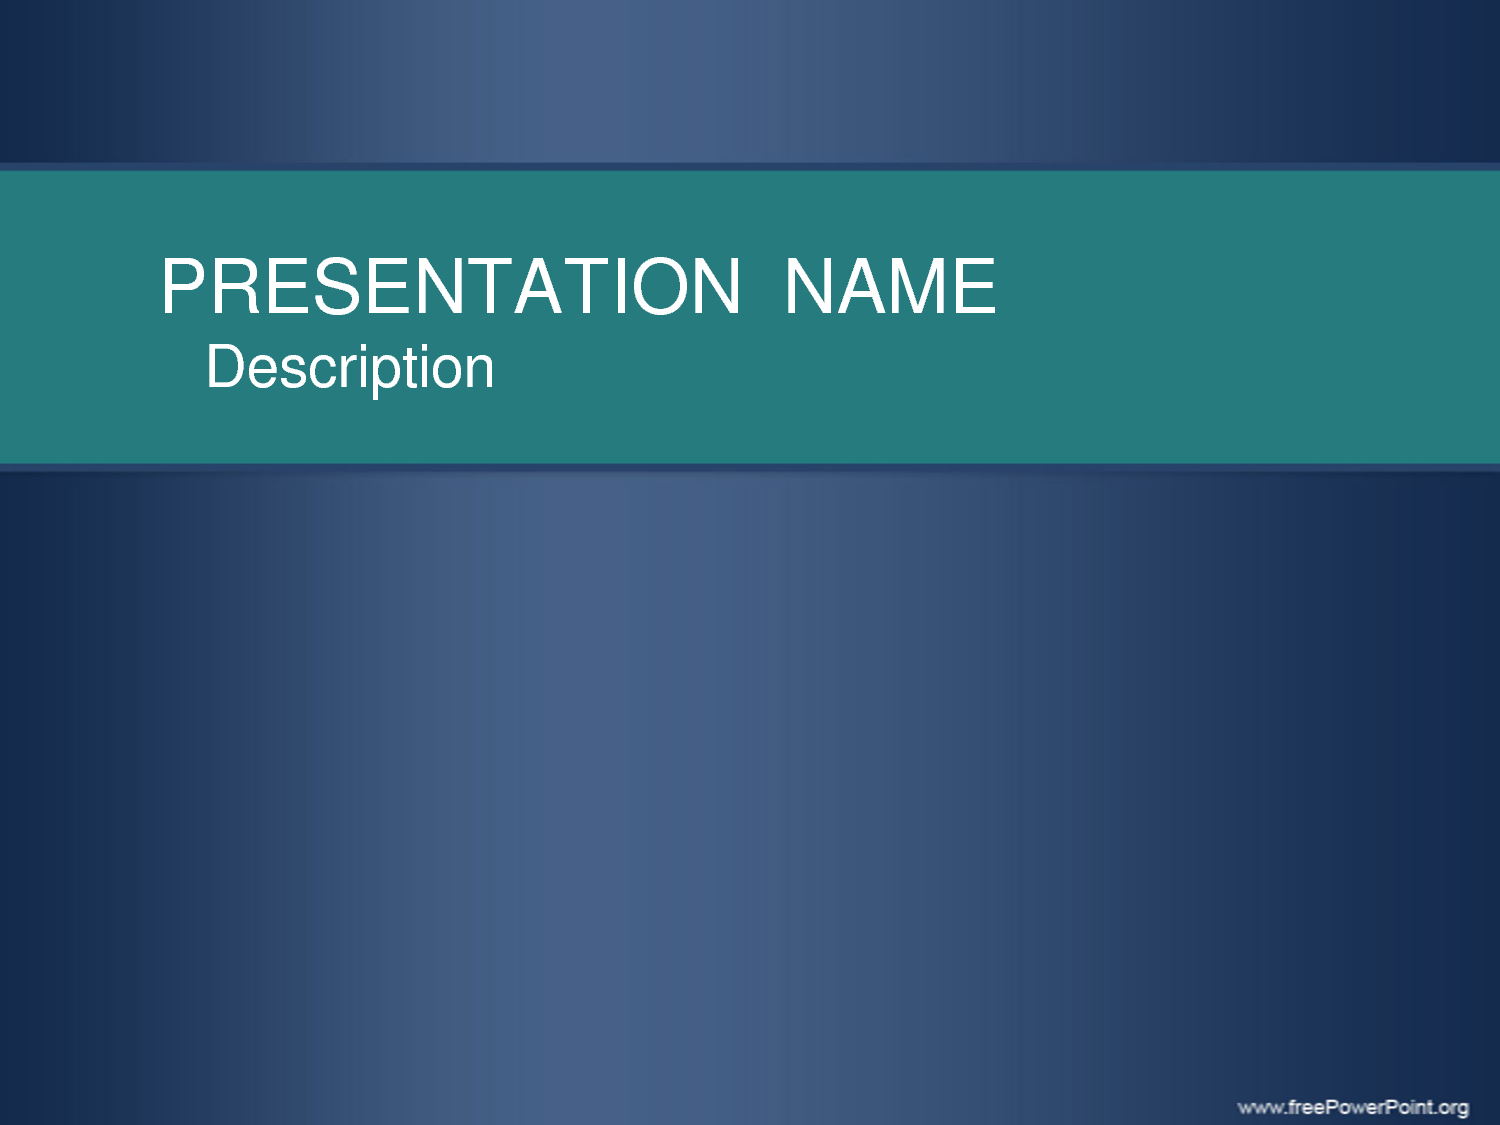 Cool PowerPoint templates, themes, Cool backgrounds for presentations